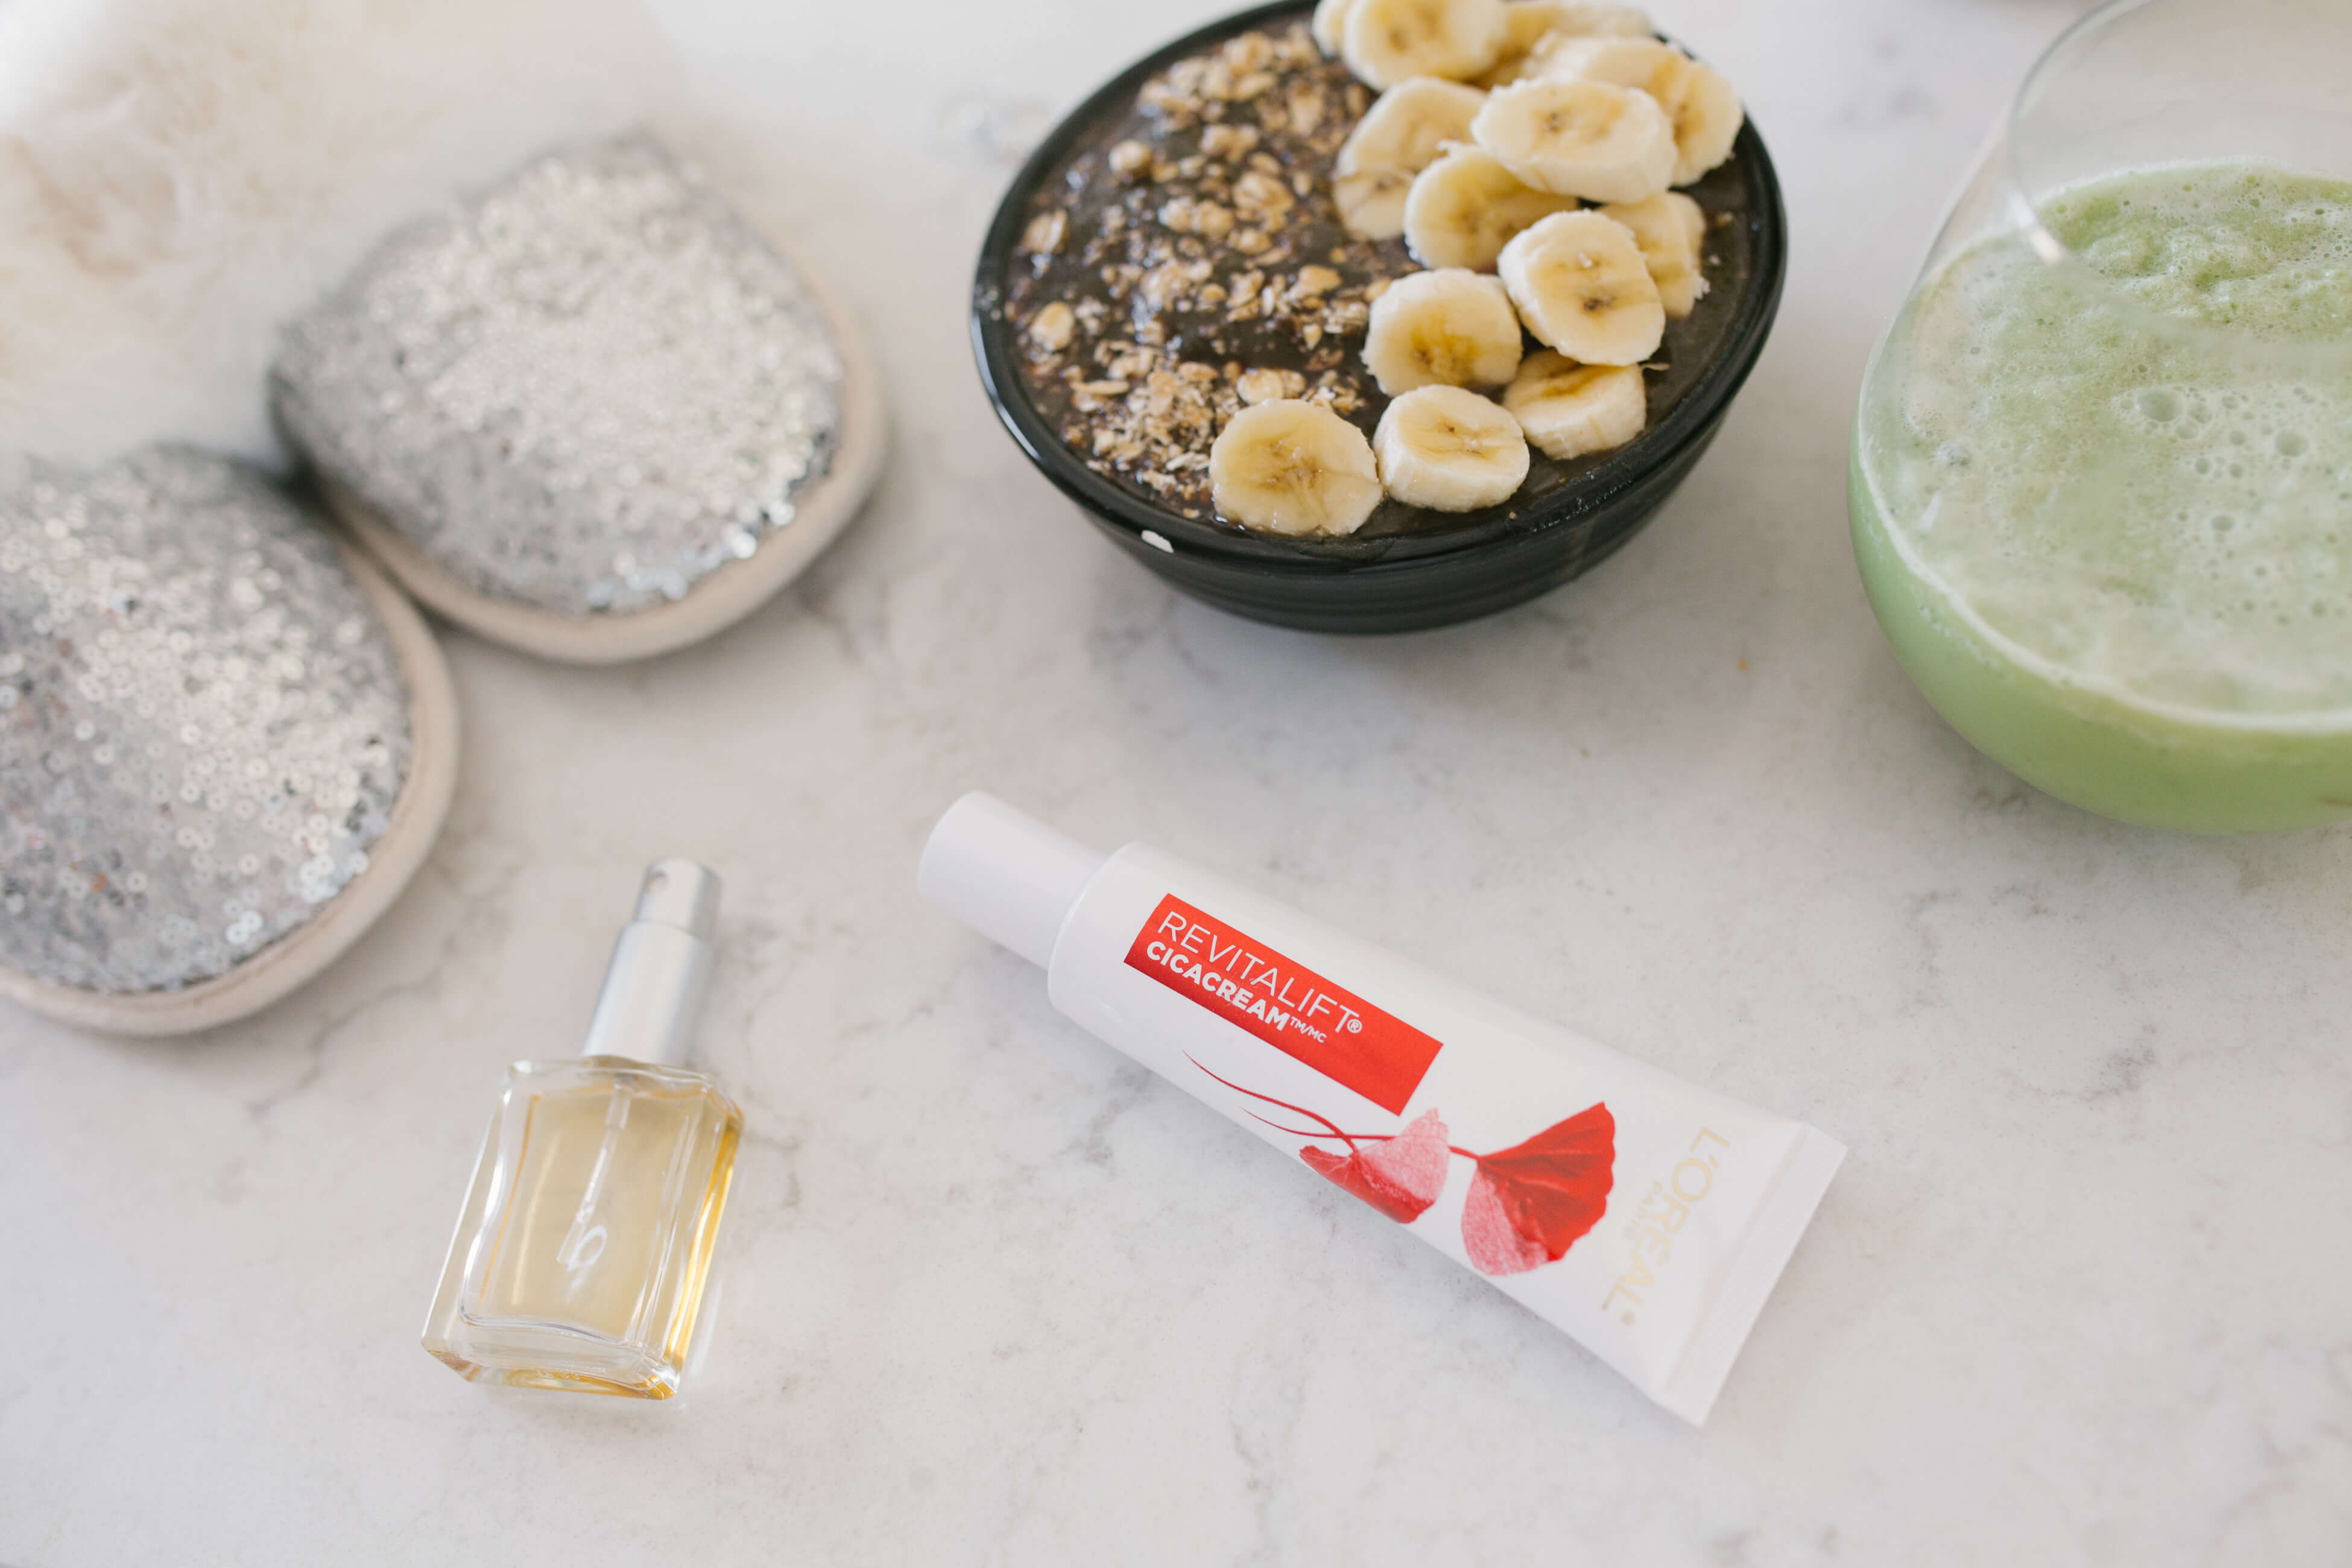 Review of L'Oreal's Revitalift Cicacream; tips on staying active and eating healthy; mandy furnis sparkleshinylove